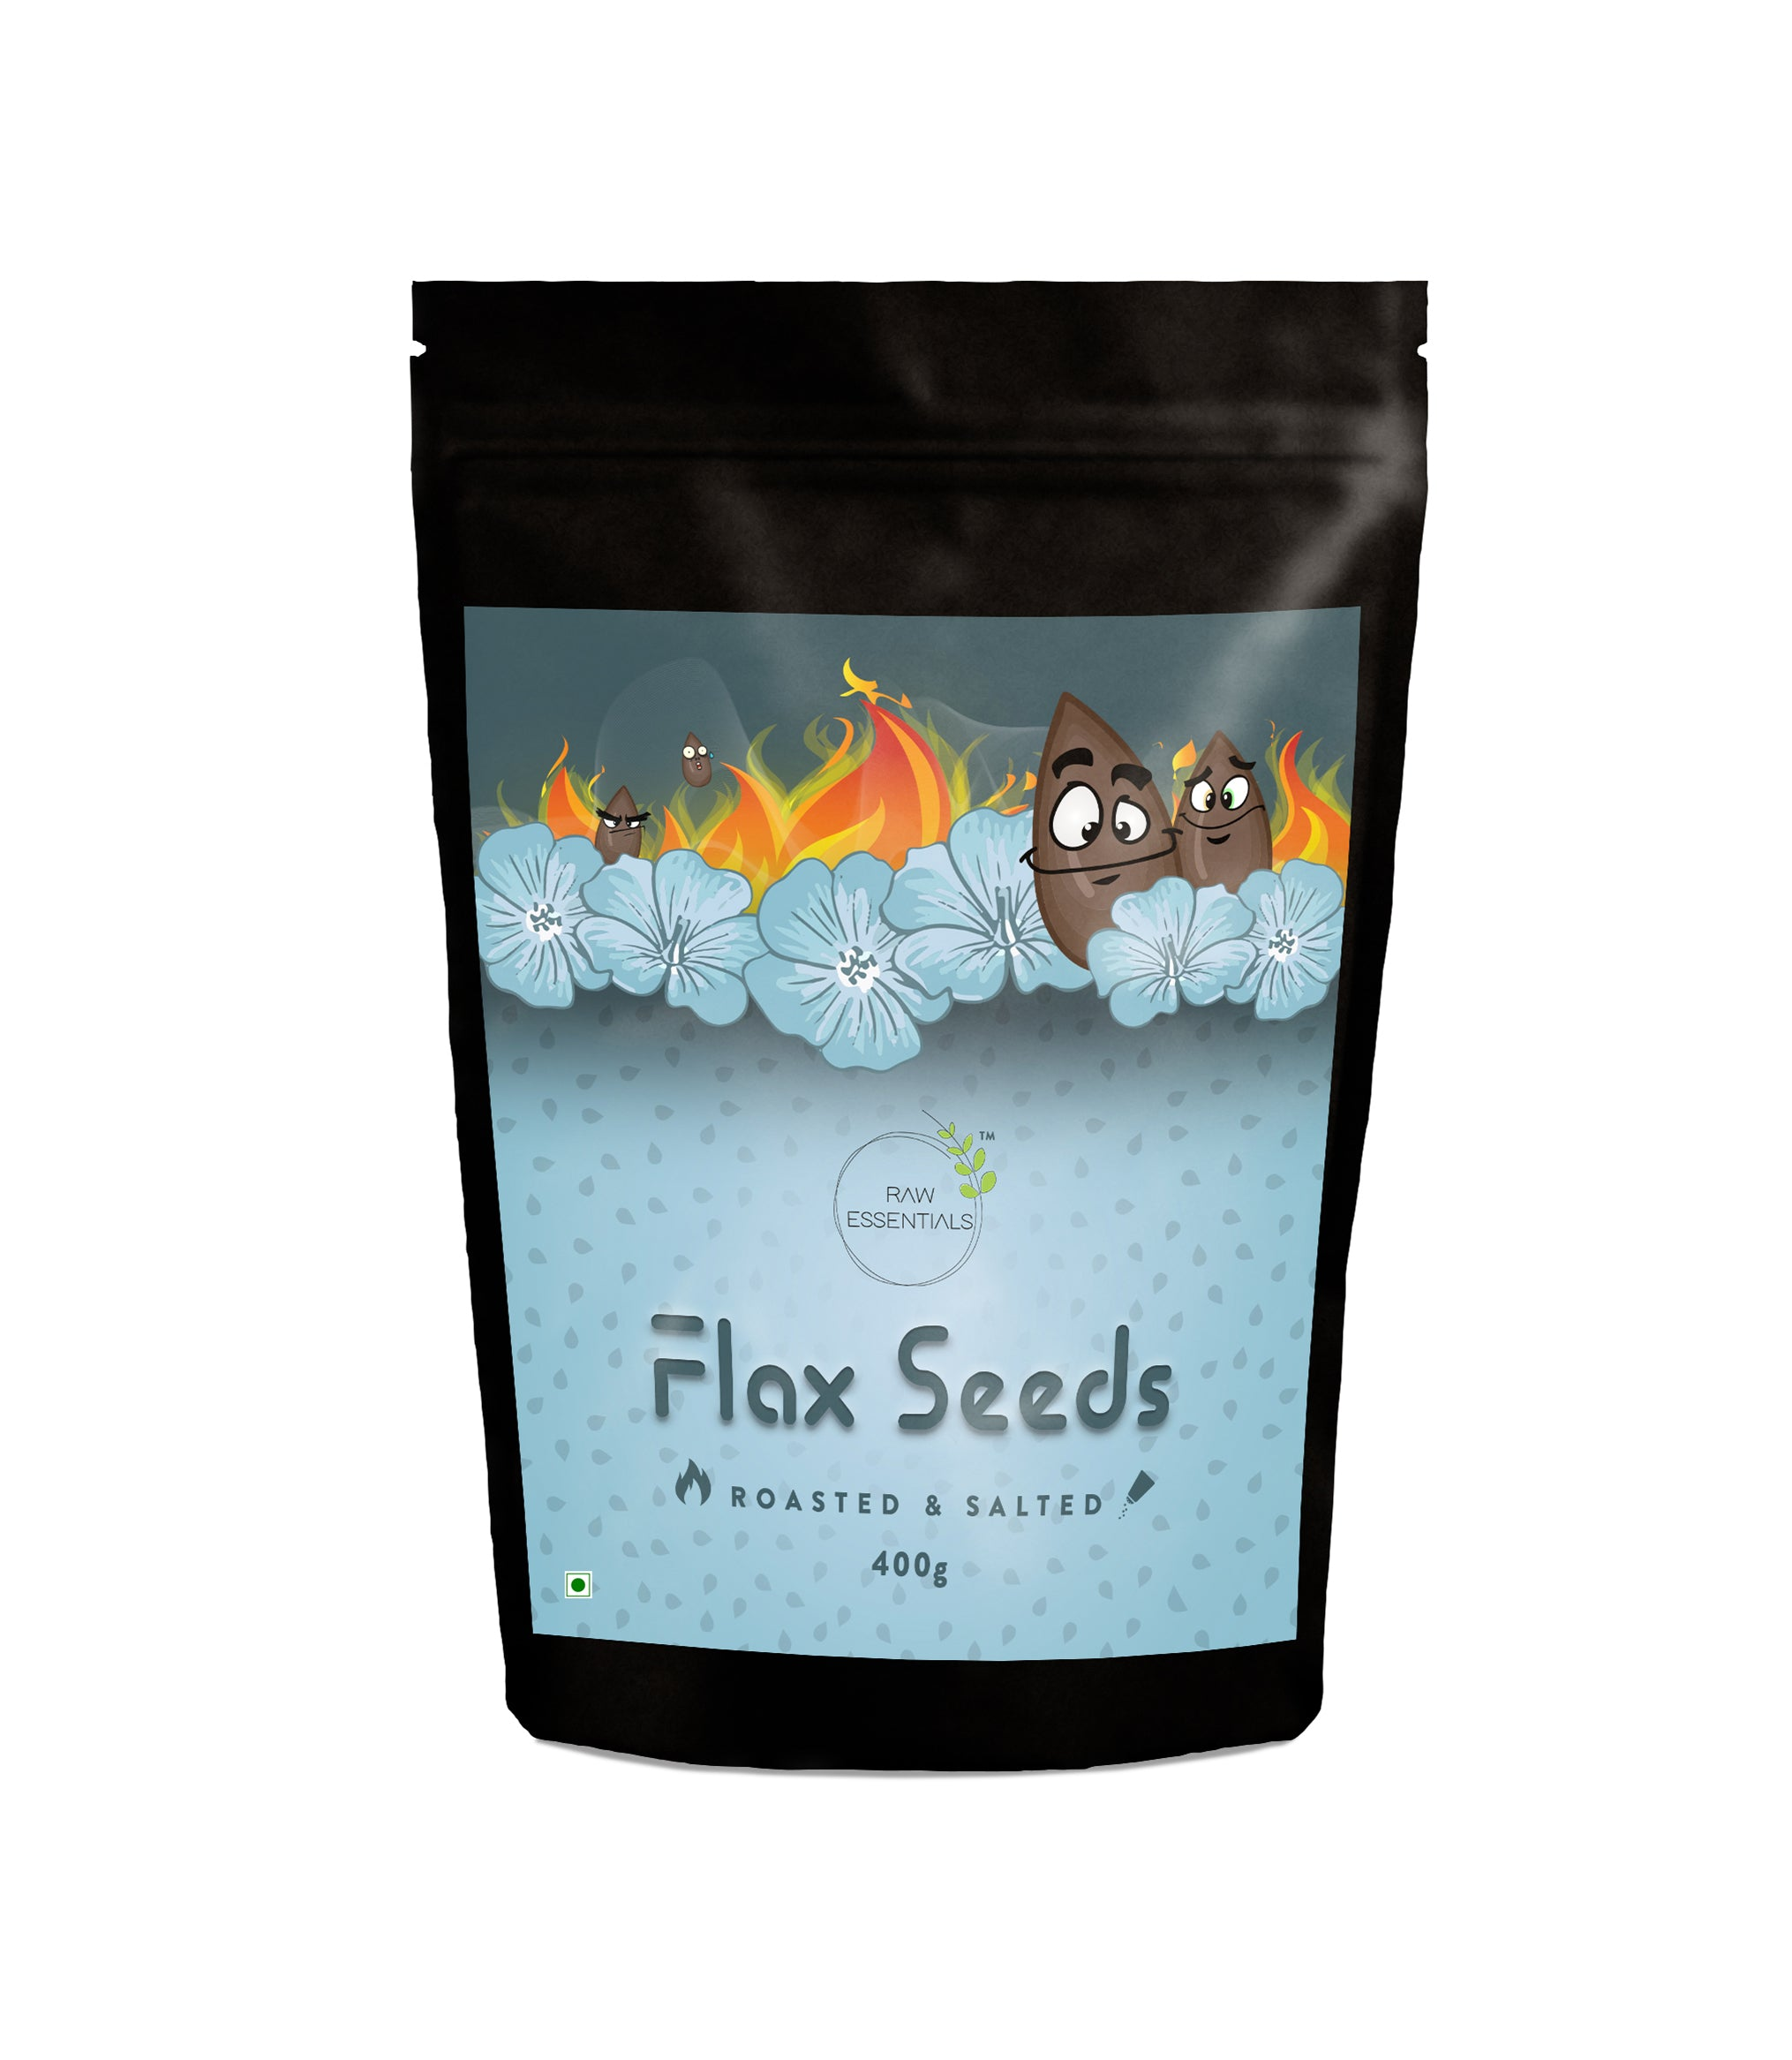 Roasted & Salted Flax seeds 400g